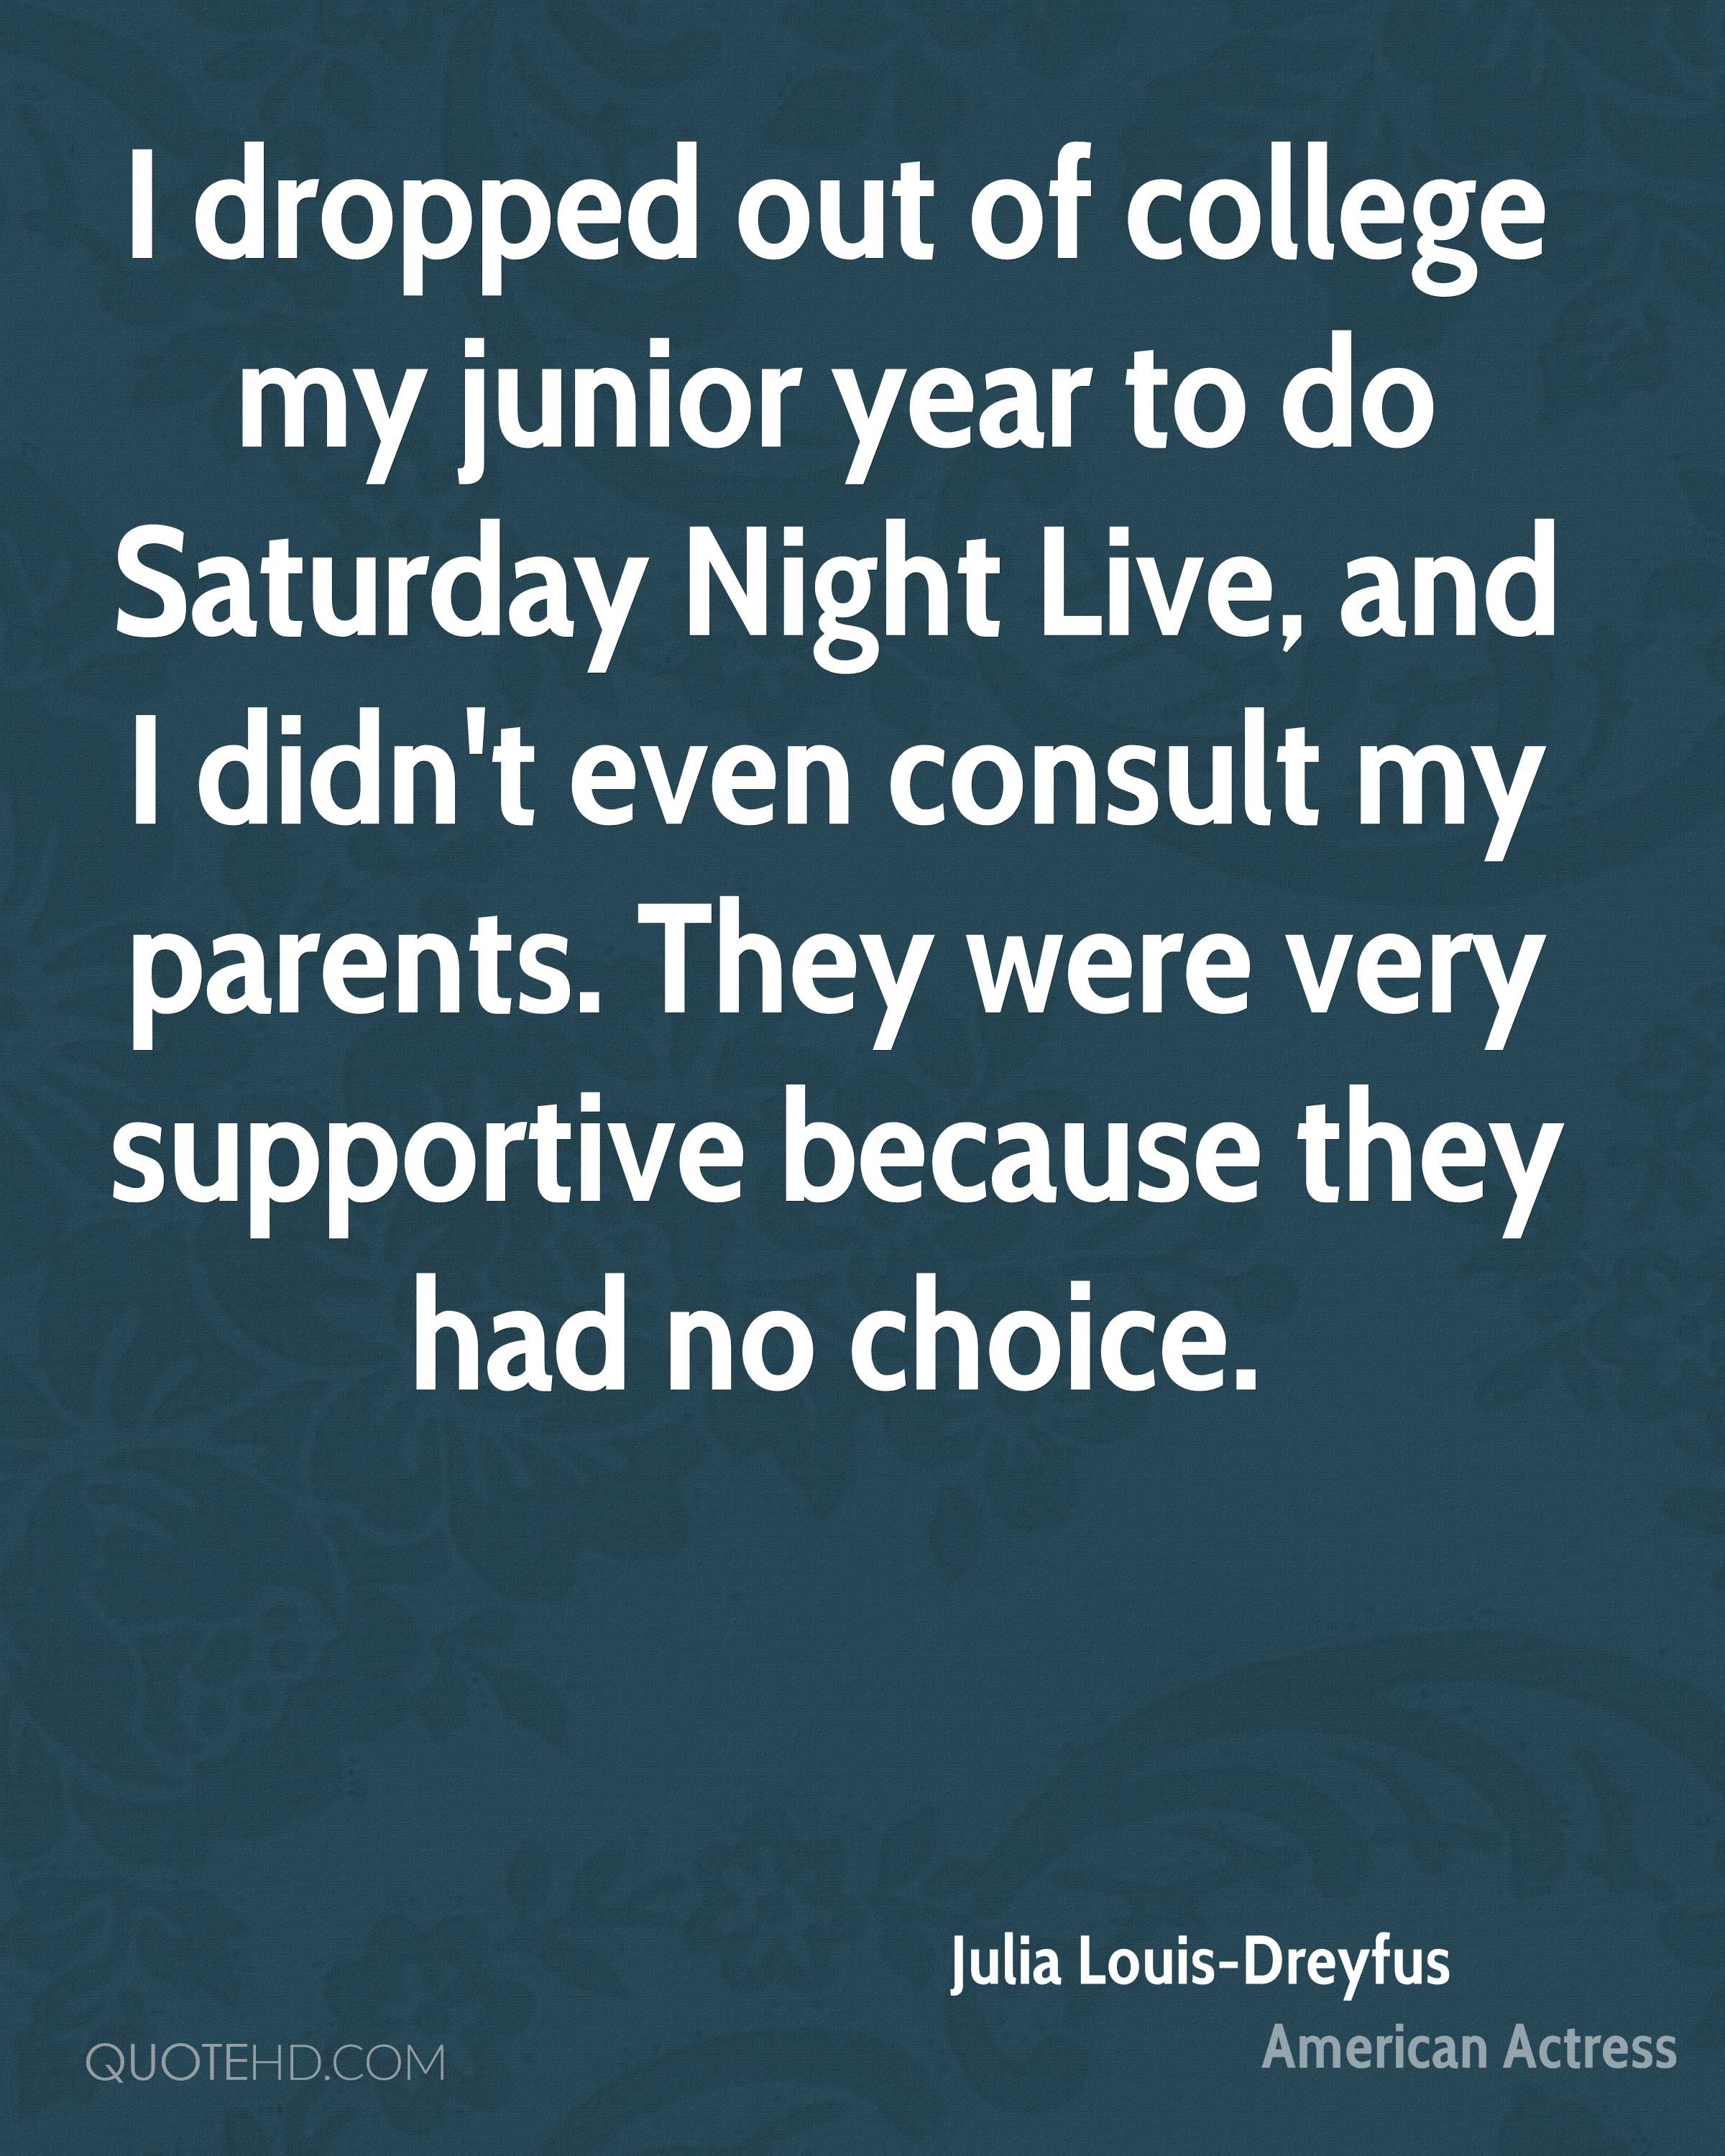 julia louis dreyfus quotes quotehd i dropped out of college my junior year to do saturday night live and i